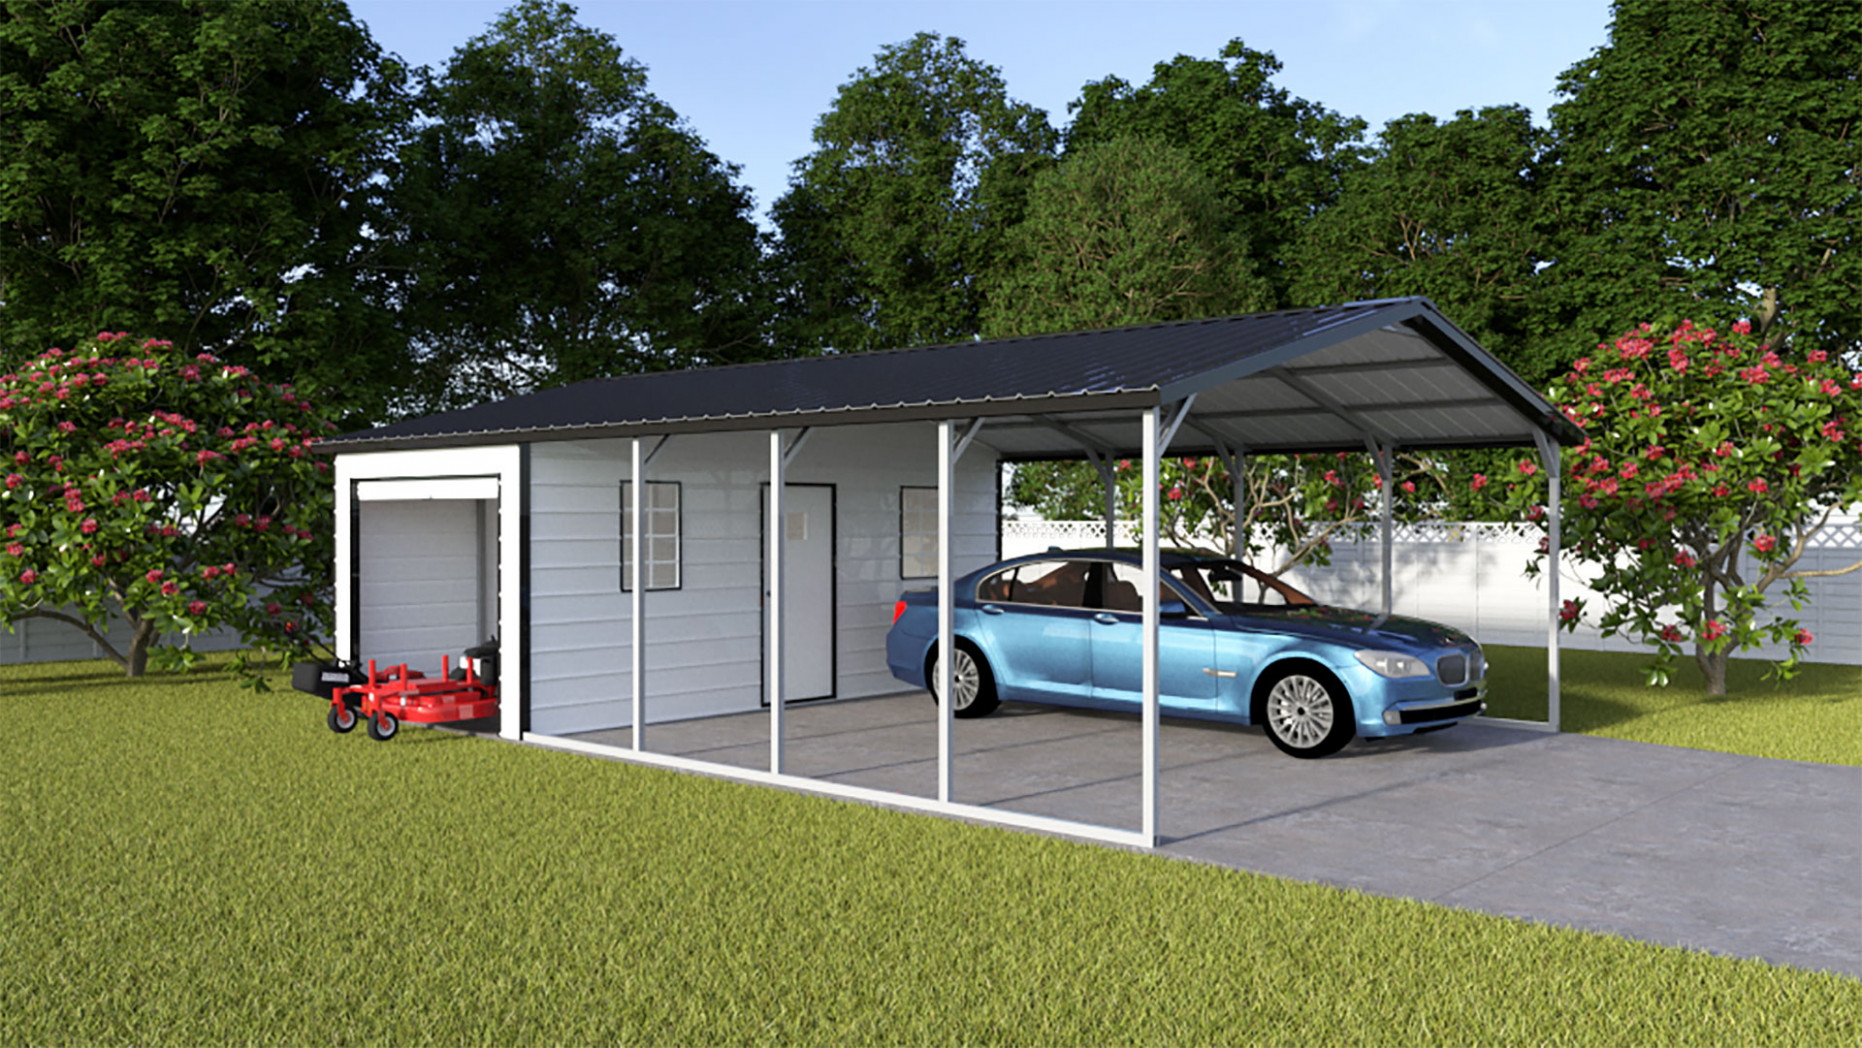 Metal Shed And Carport Combo Unit | Eagle Carport Double Garage With Carport